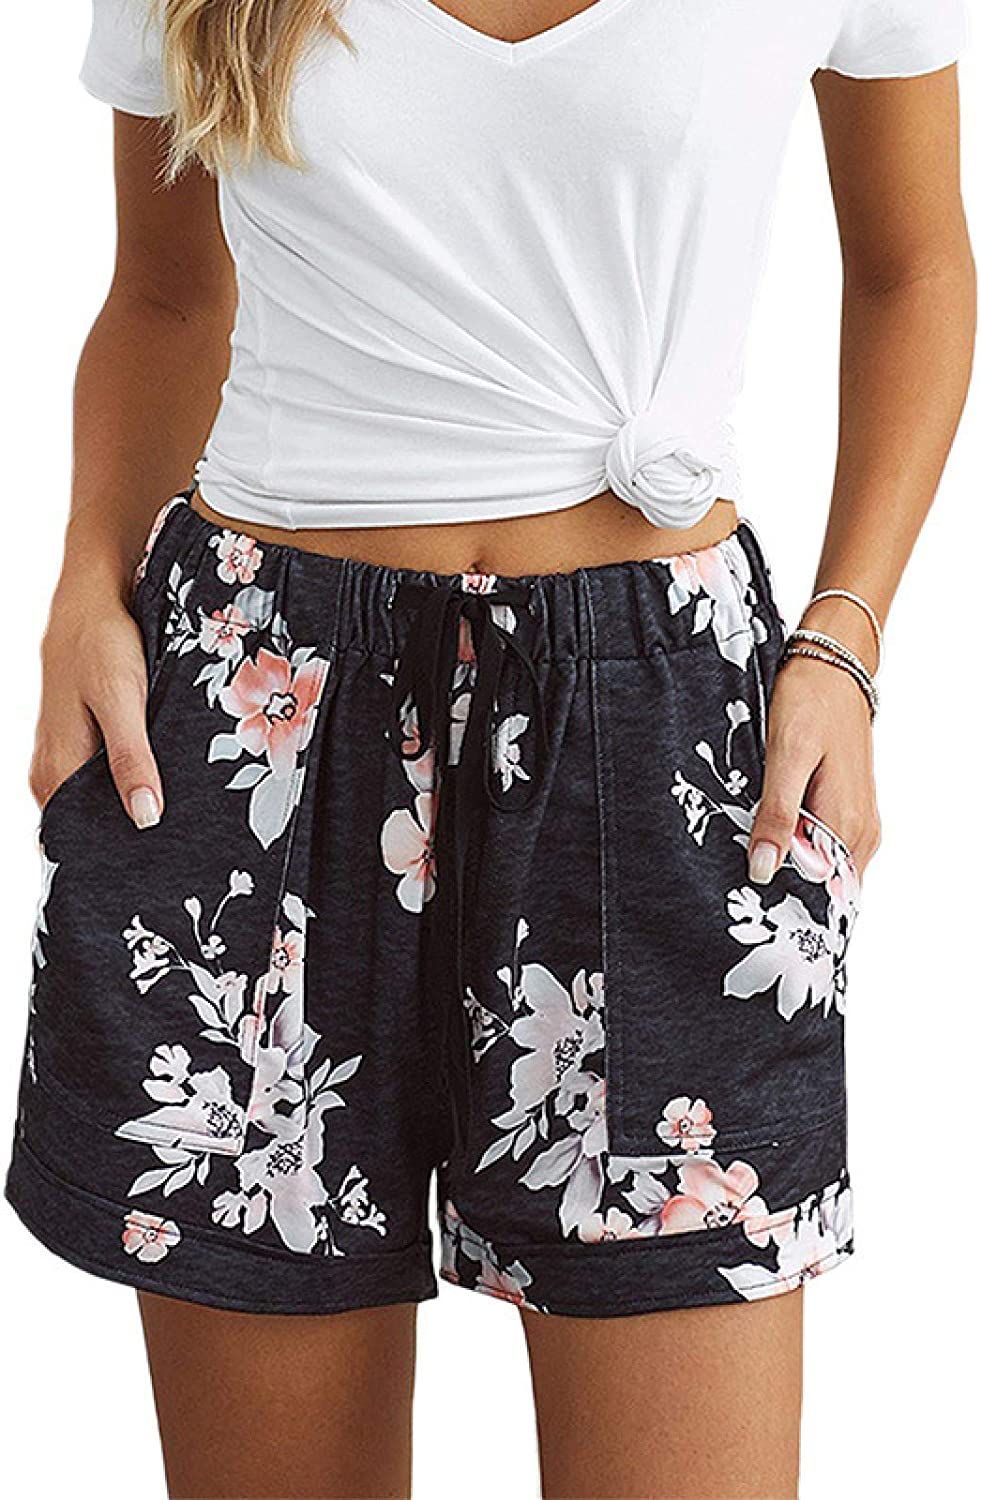 Zestion Women Our shop OFFers the best service New Free Shipping ´s Summer Casual Camouflage High Shorts Printed